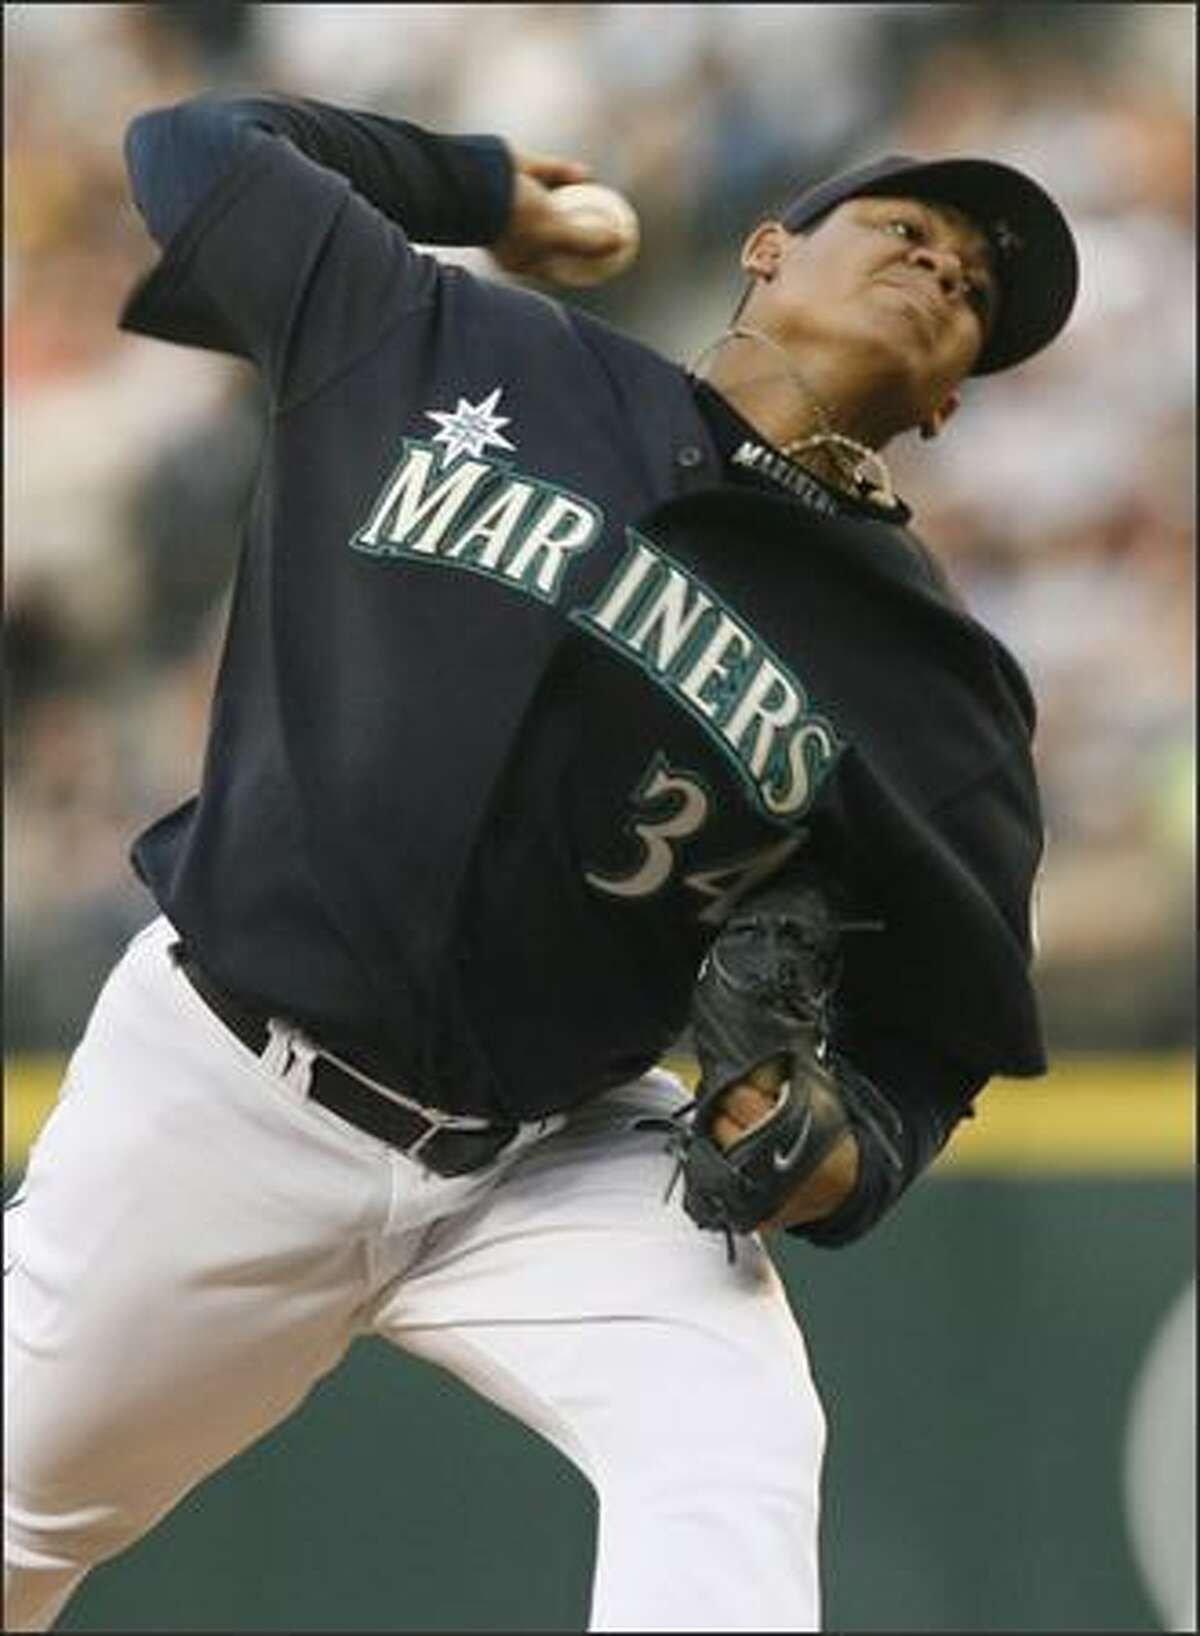 Starting pitcher Felix Herandez works against the Athletics in the third innning of the game between the Mariners and the Athletics in Seattle on Friday.